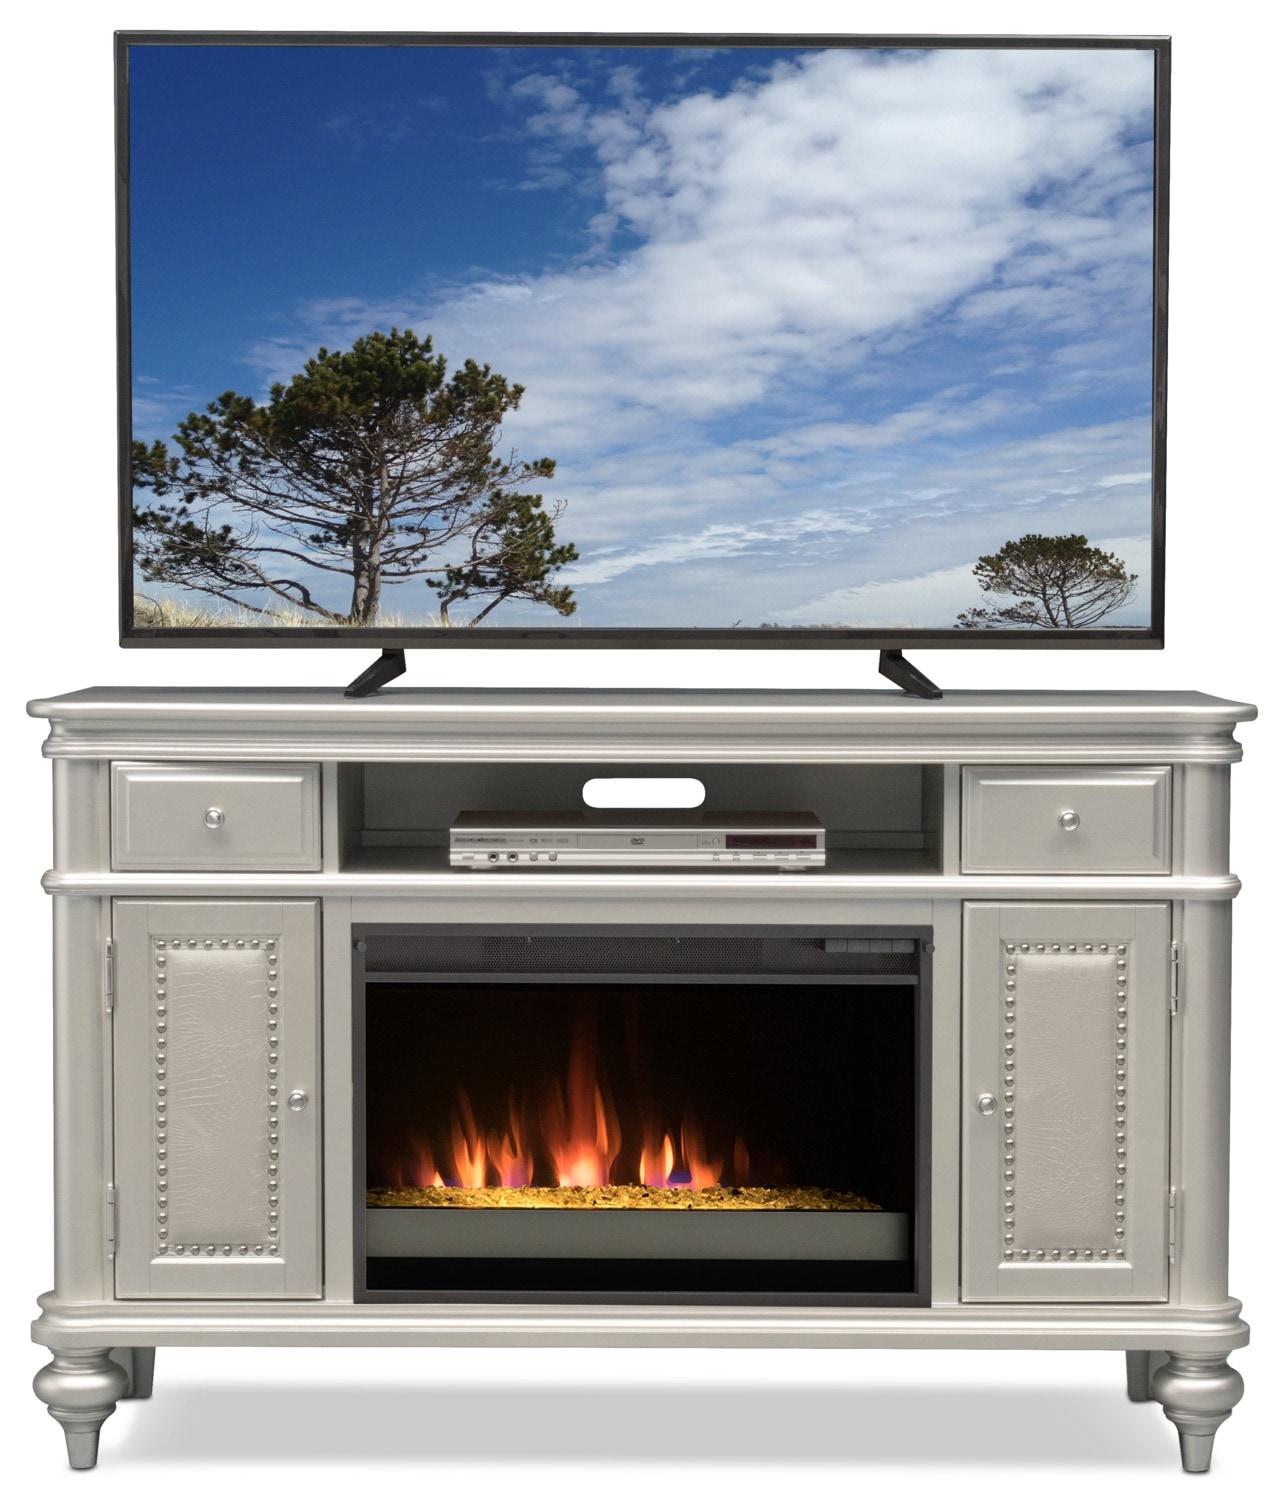 esquire 55 contemporary fireplace tv stand platinum value city furniture and mattresses. Black Bedroom Furniture Sets. Home Design Ideas